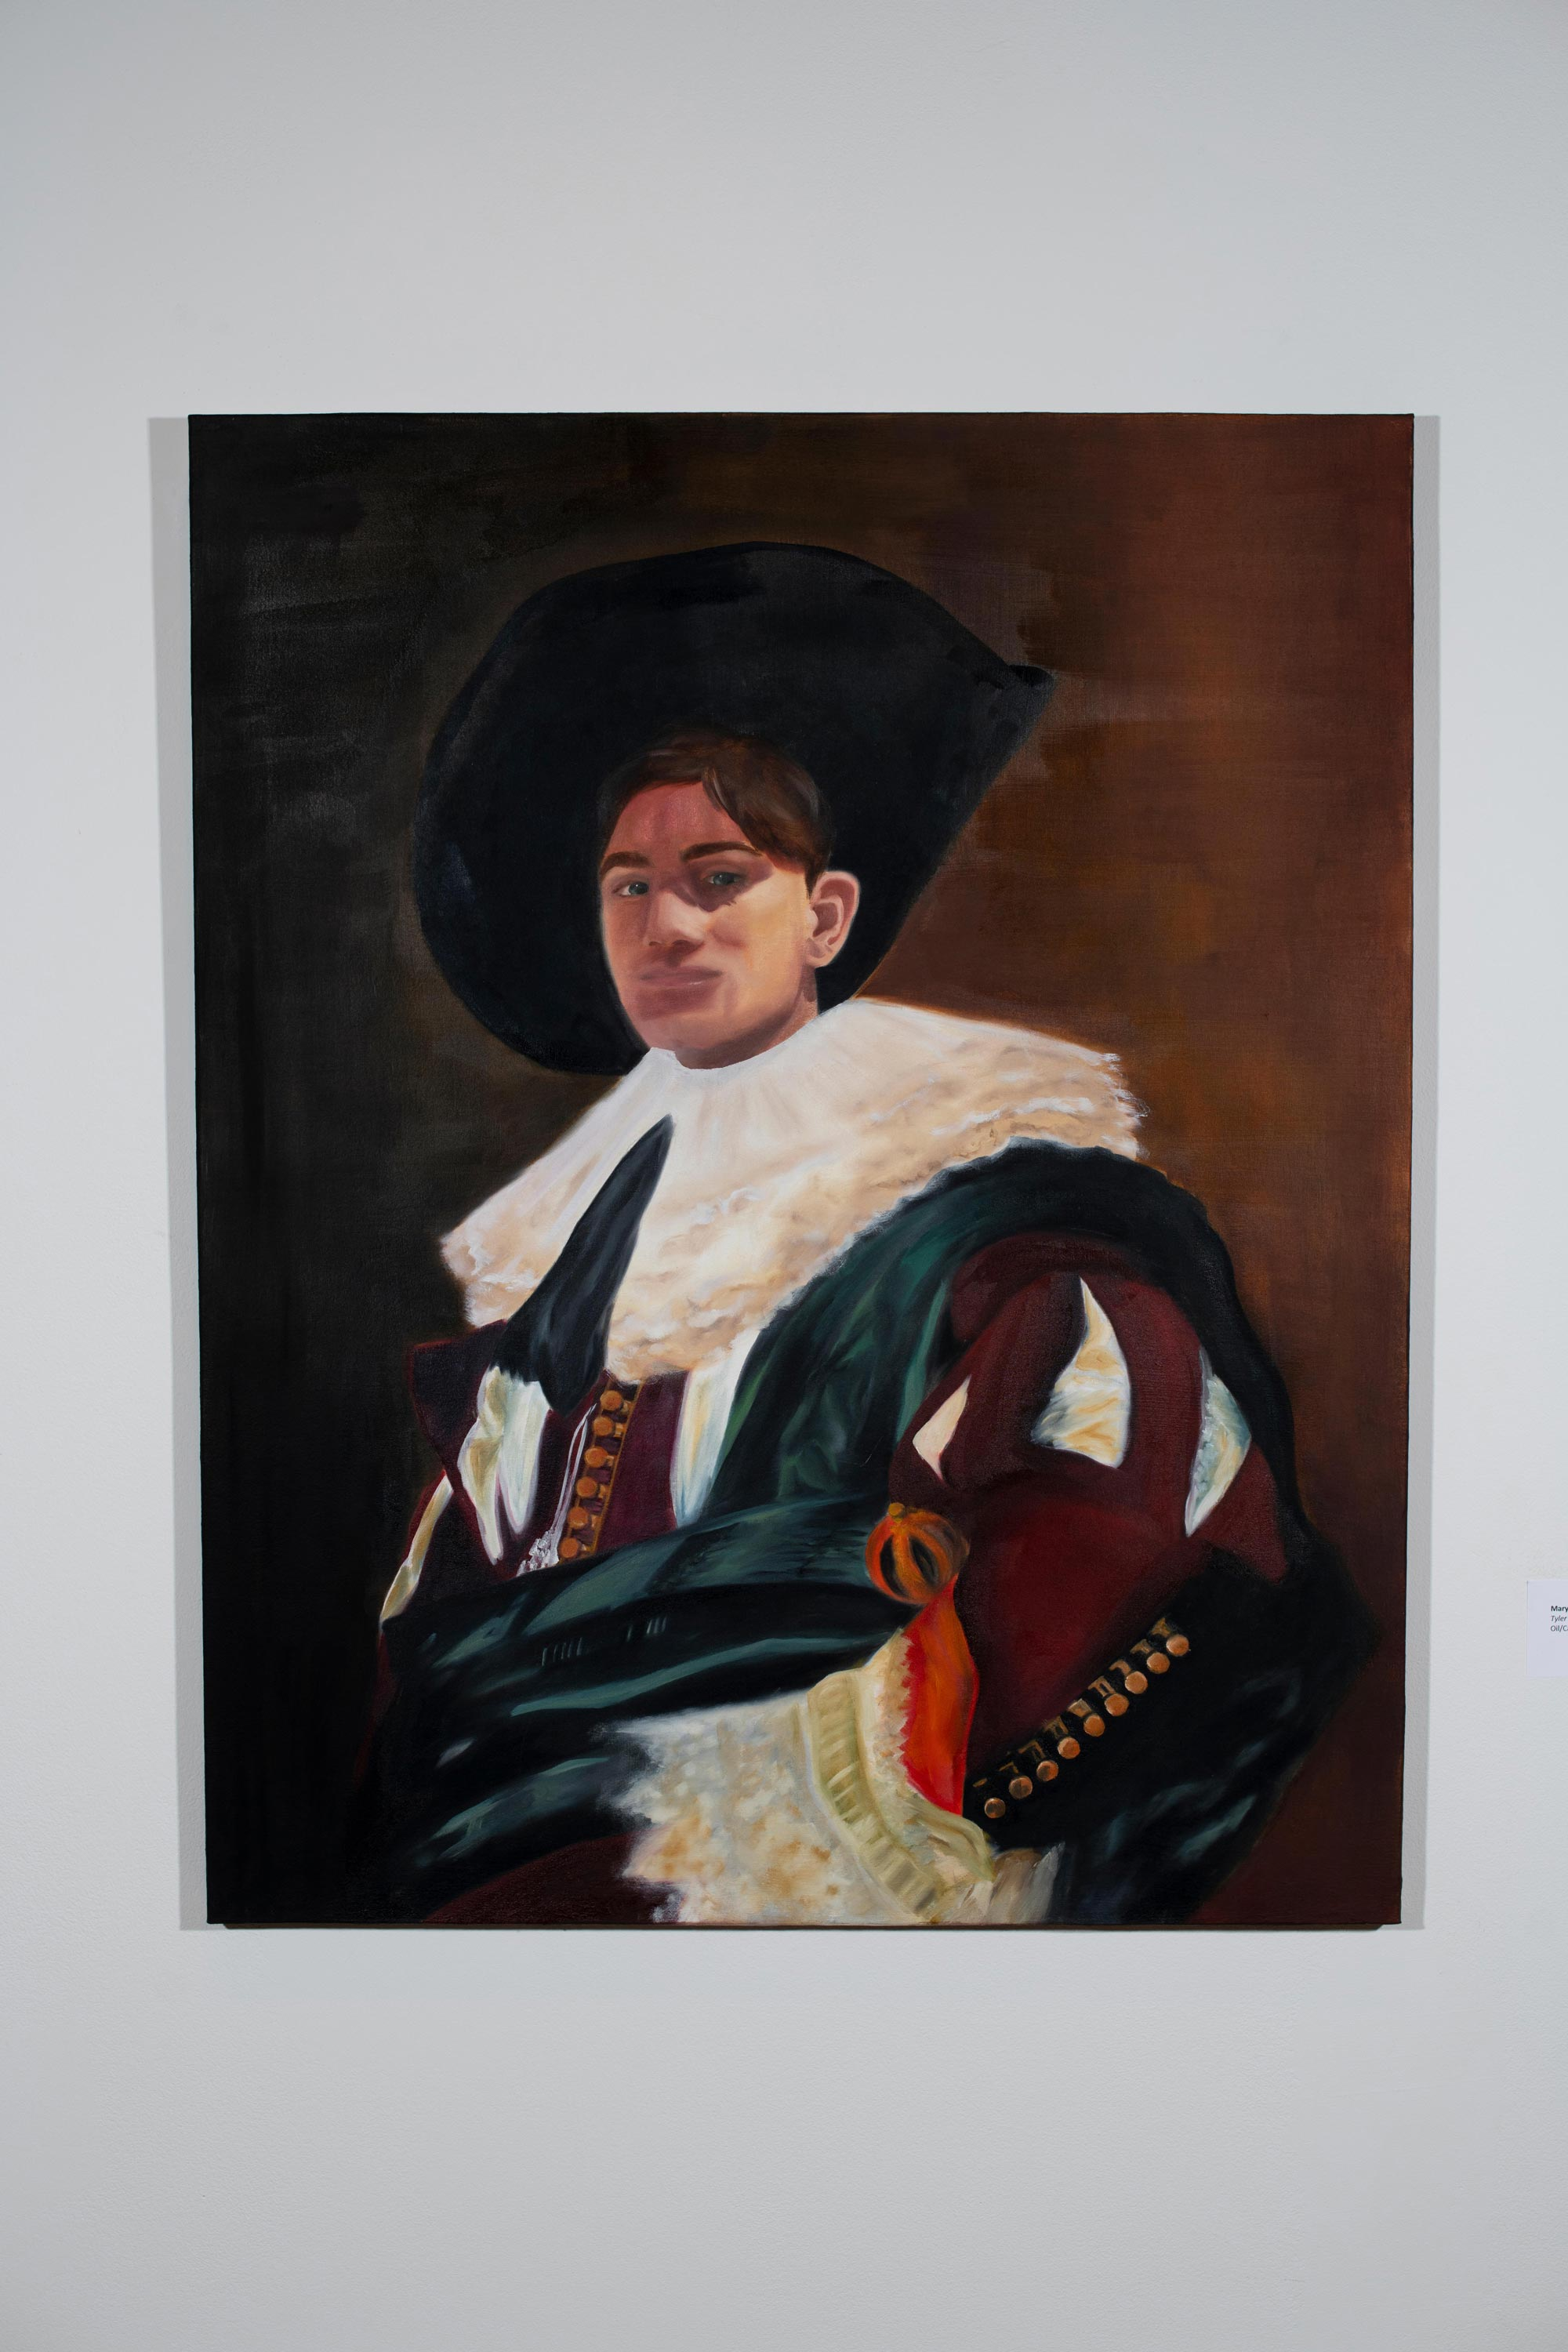 Tyler after Frans Hals by Mary Manley [Oil/Canvas, 2018]